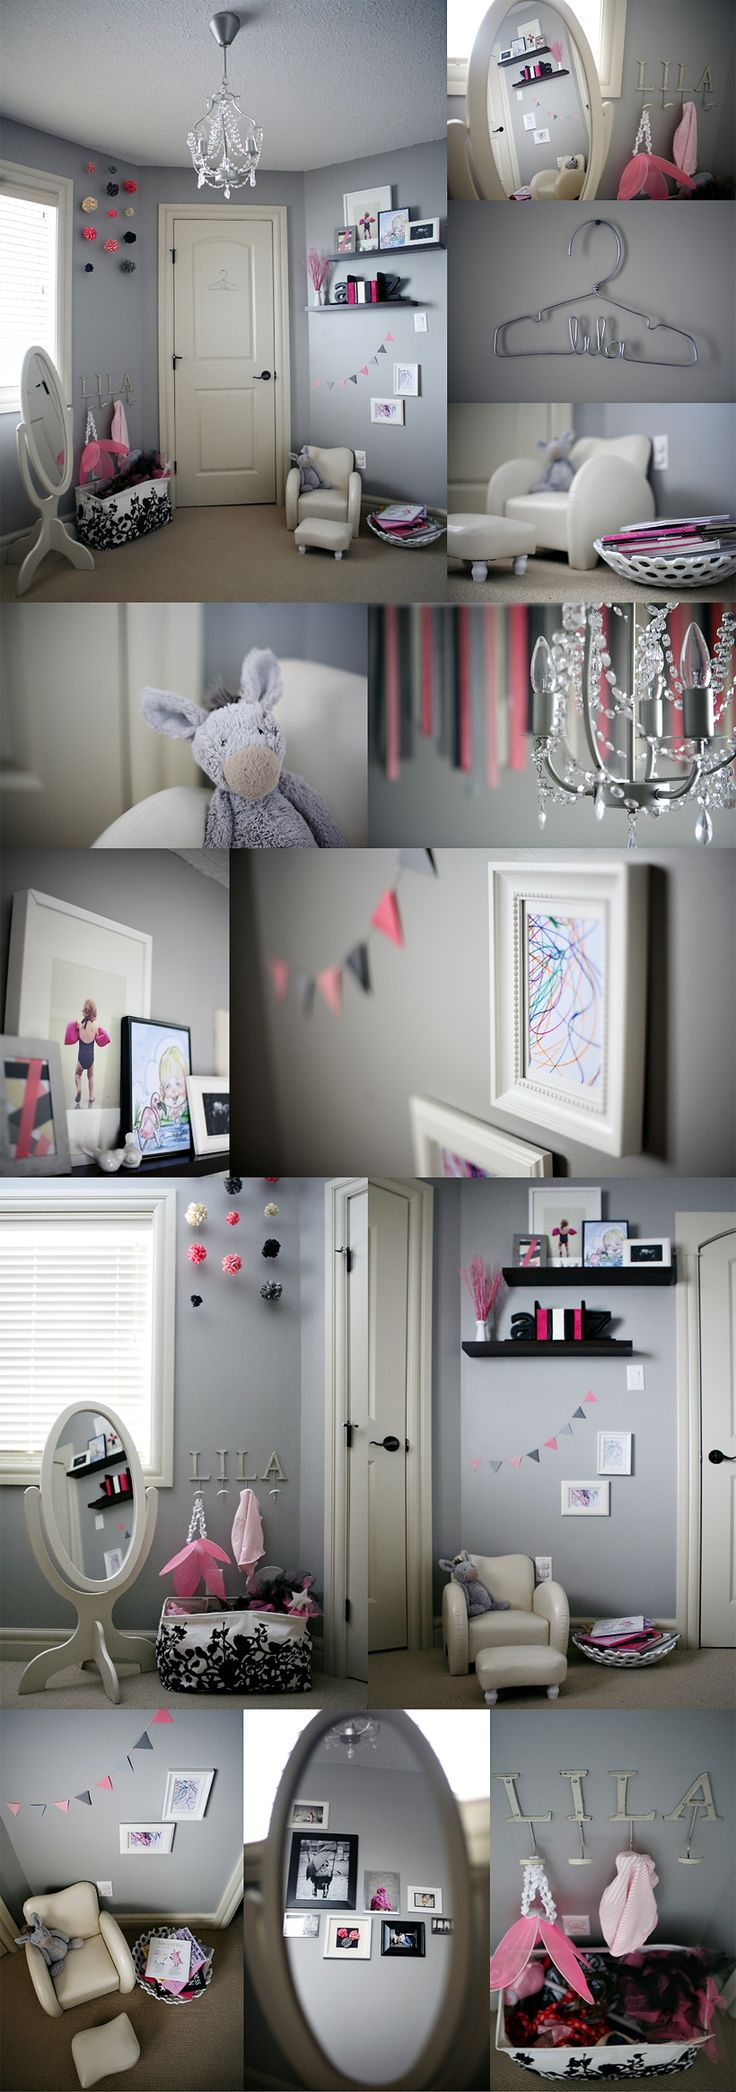 I am in love with this color scheme...i am going to do this grey pink white and black theme in my 3 yr old's room...the grey is nice.